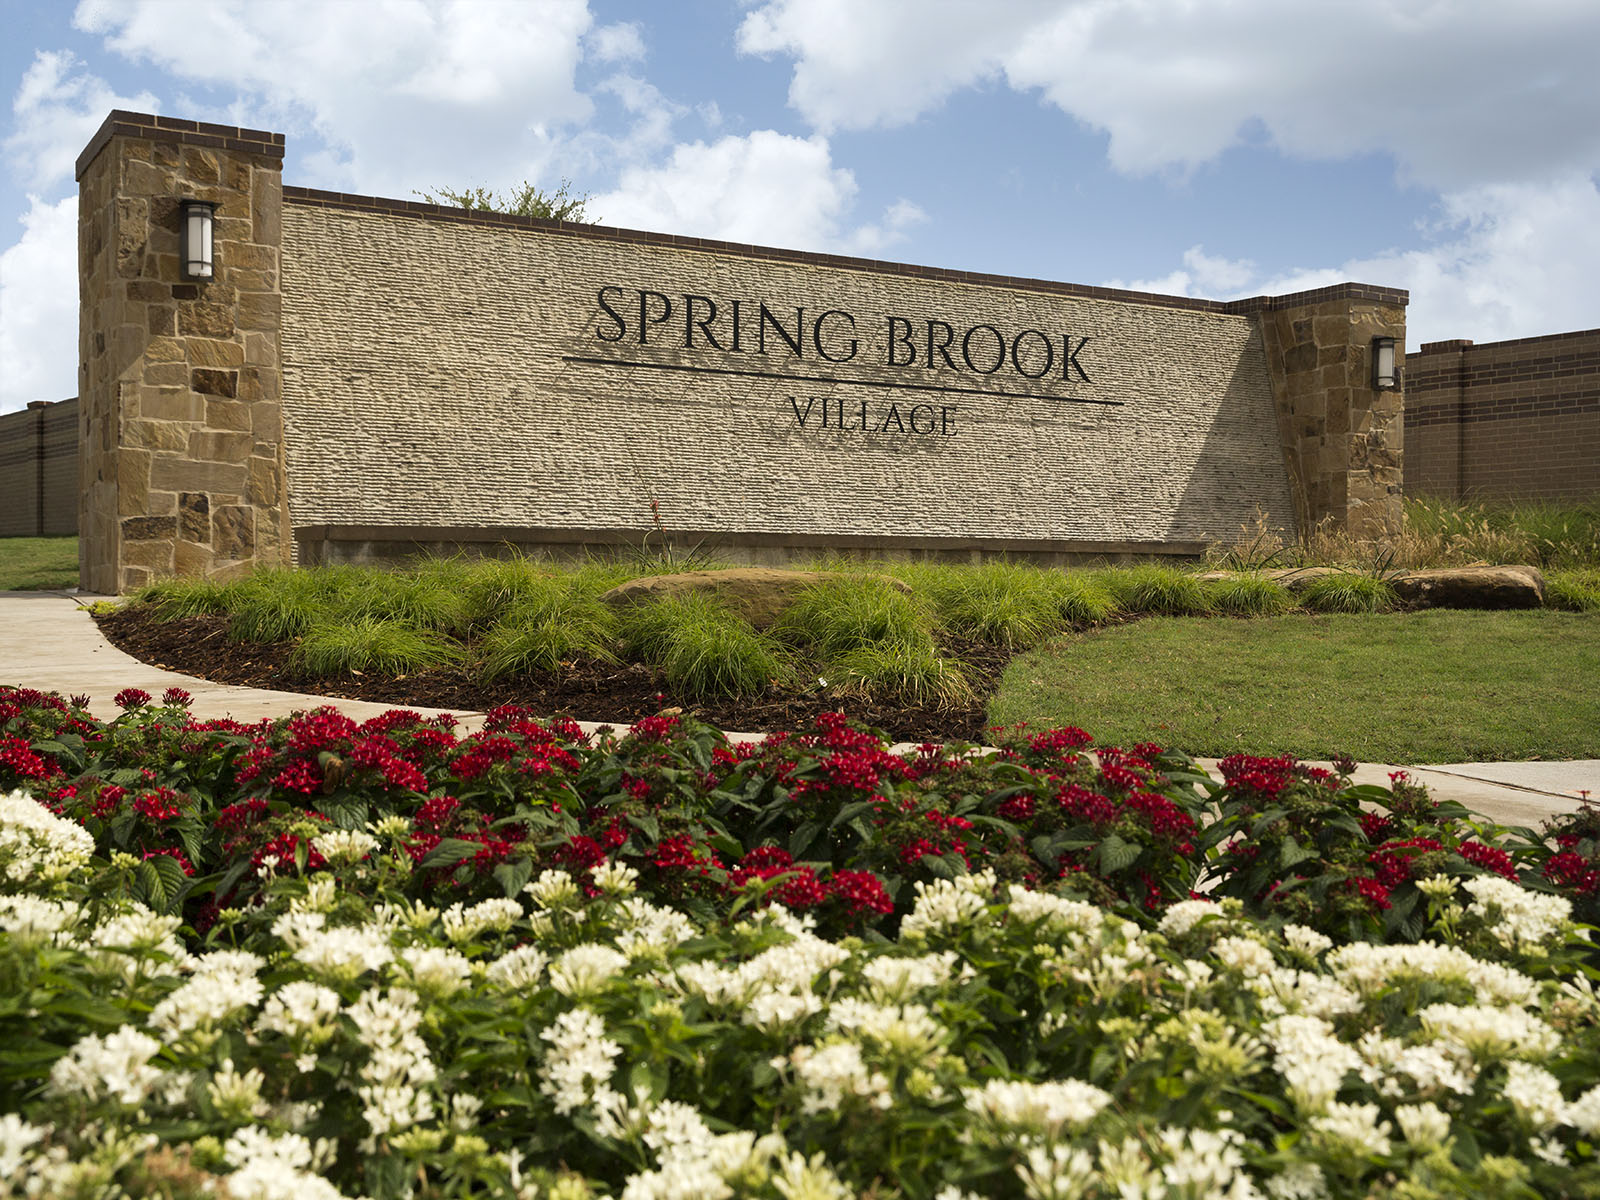 Spring Brook Village